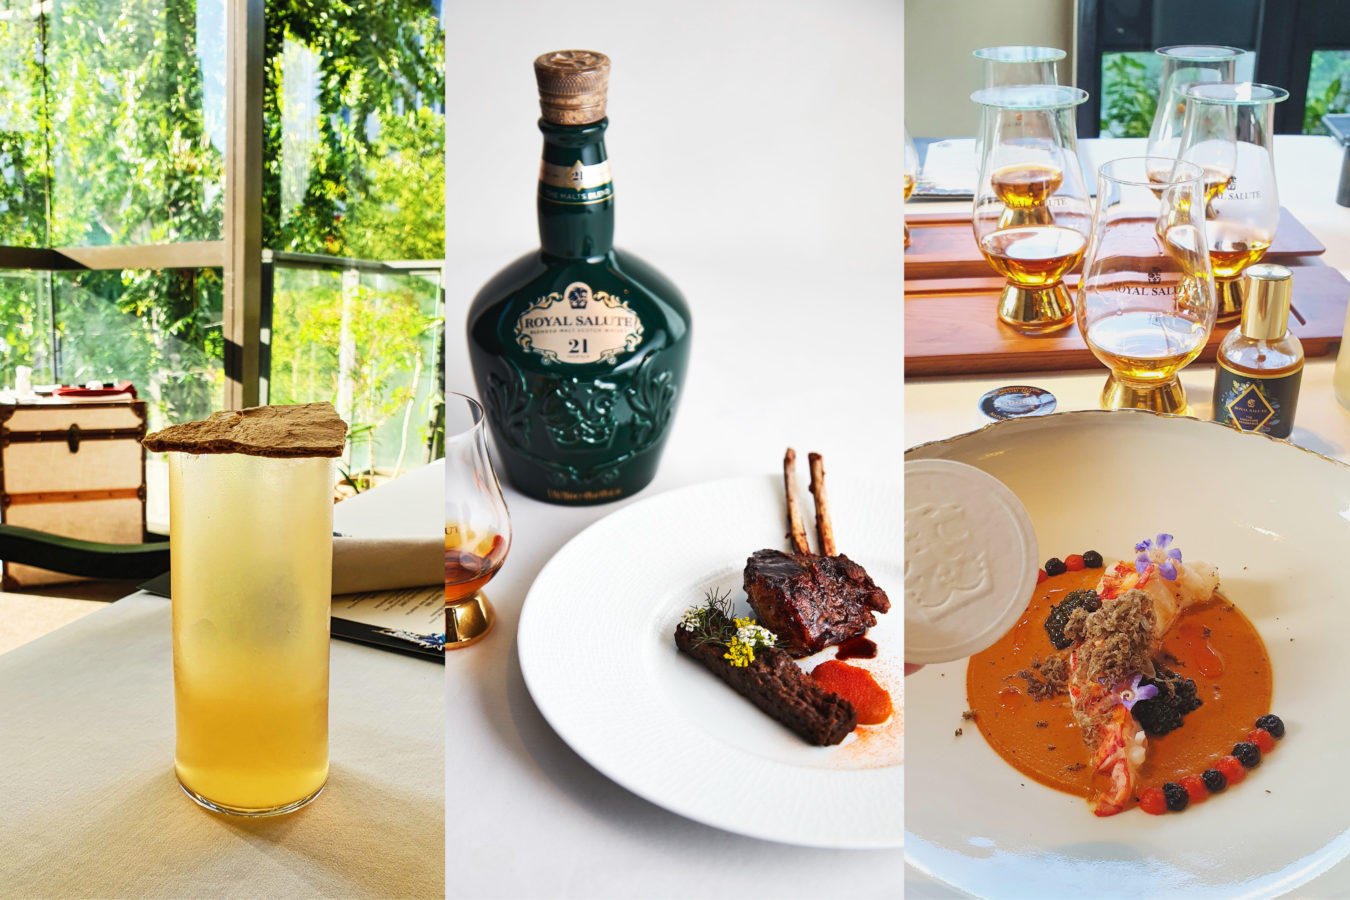 The Royale Salute x Nadodi pairing is a regal feast not to be missed